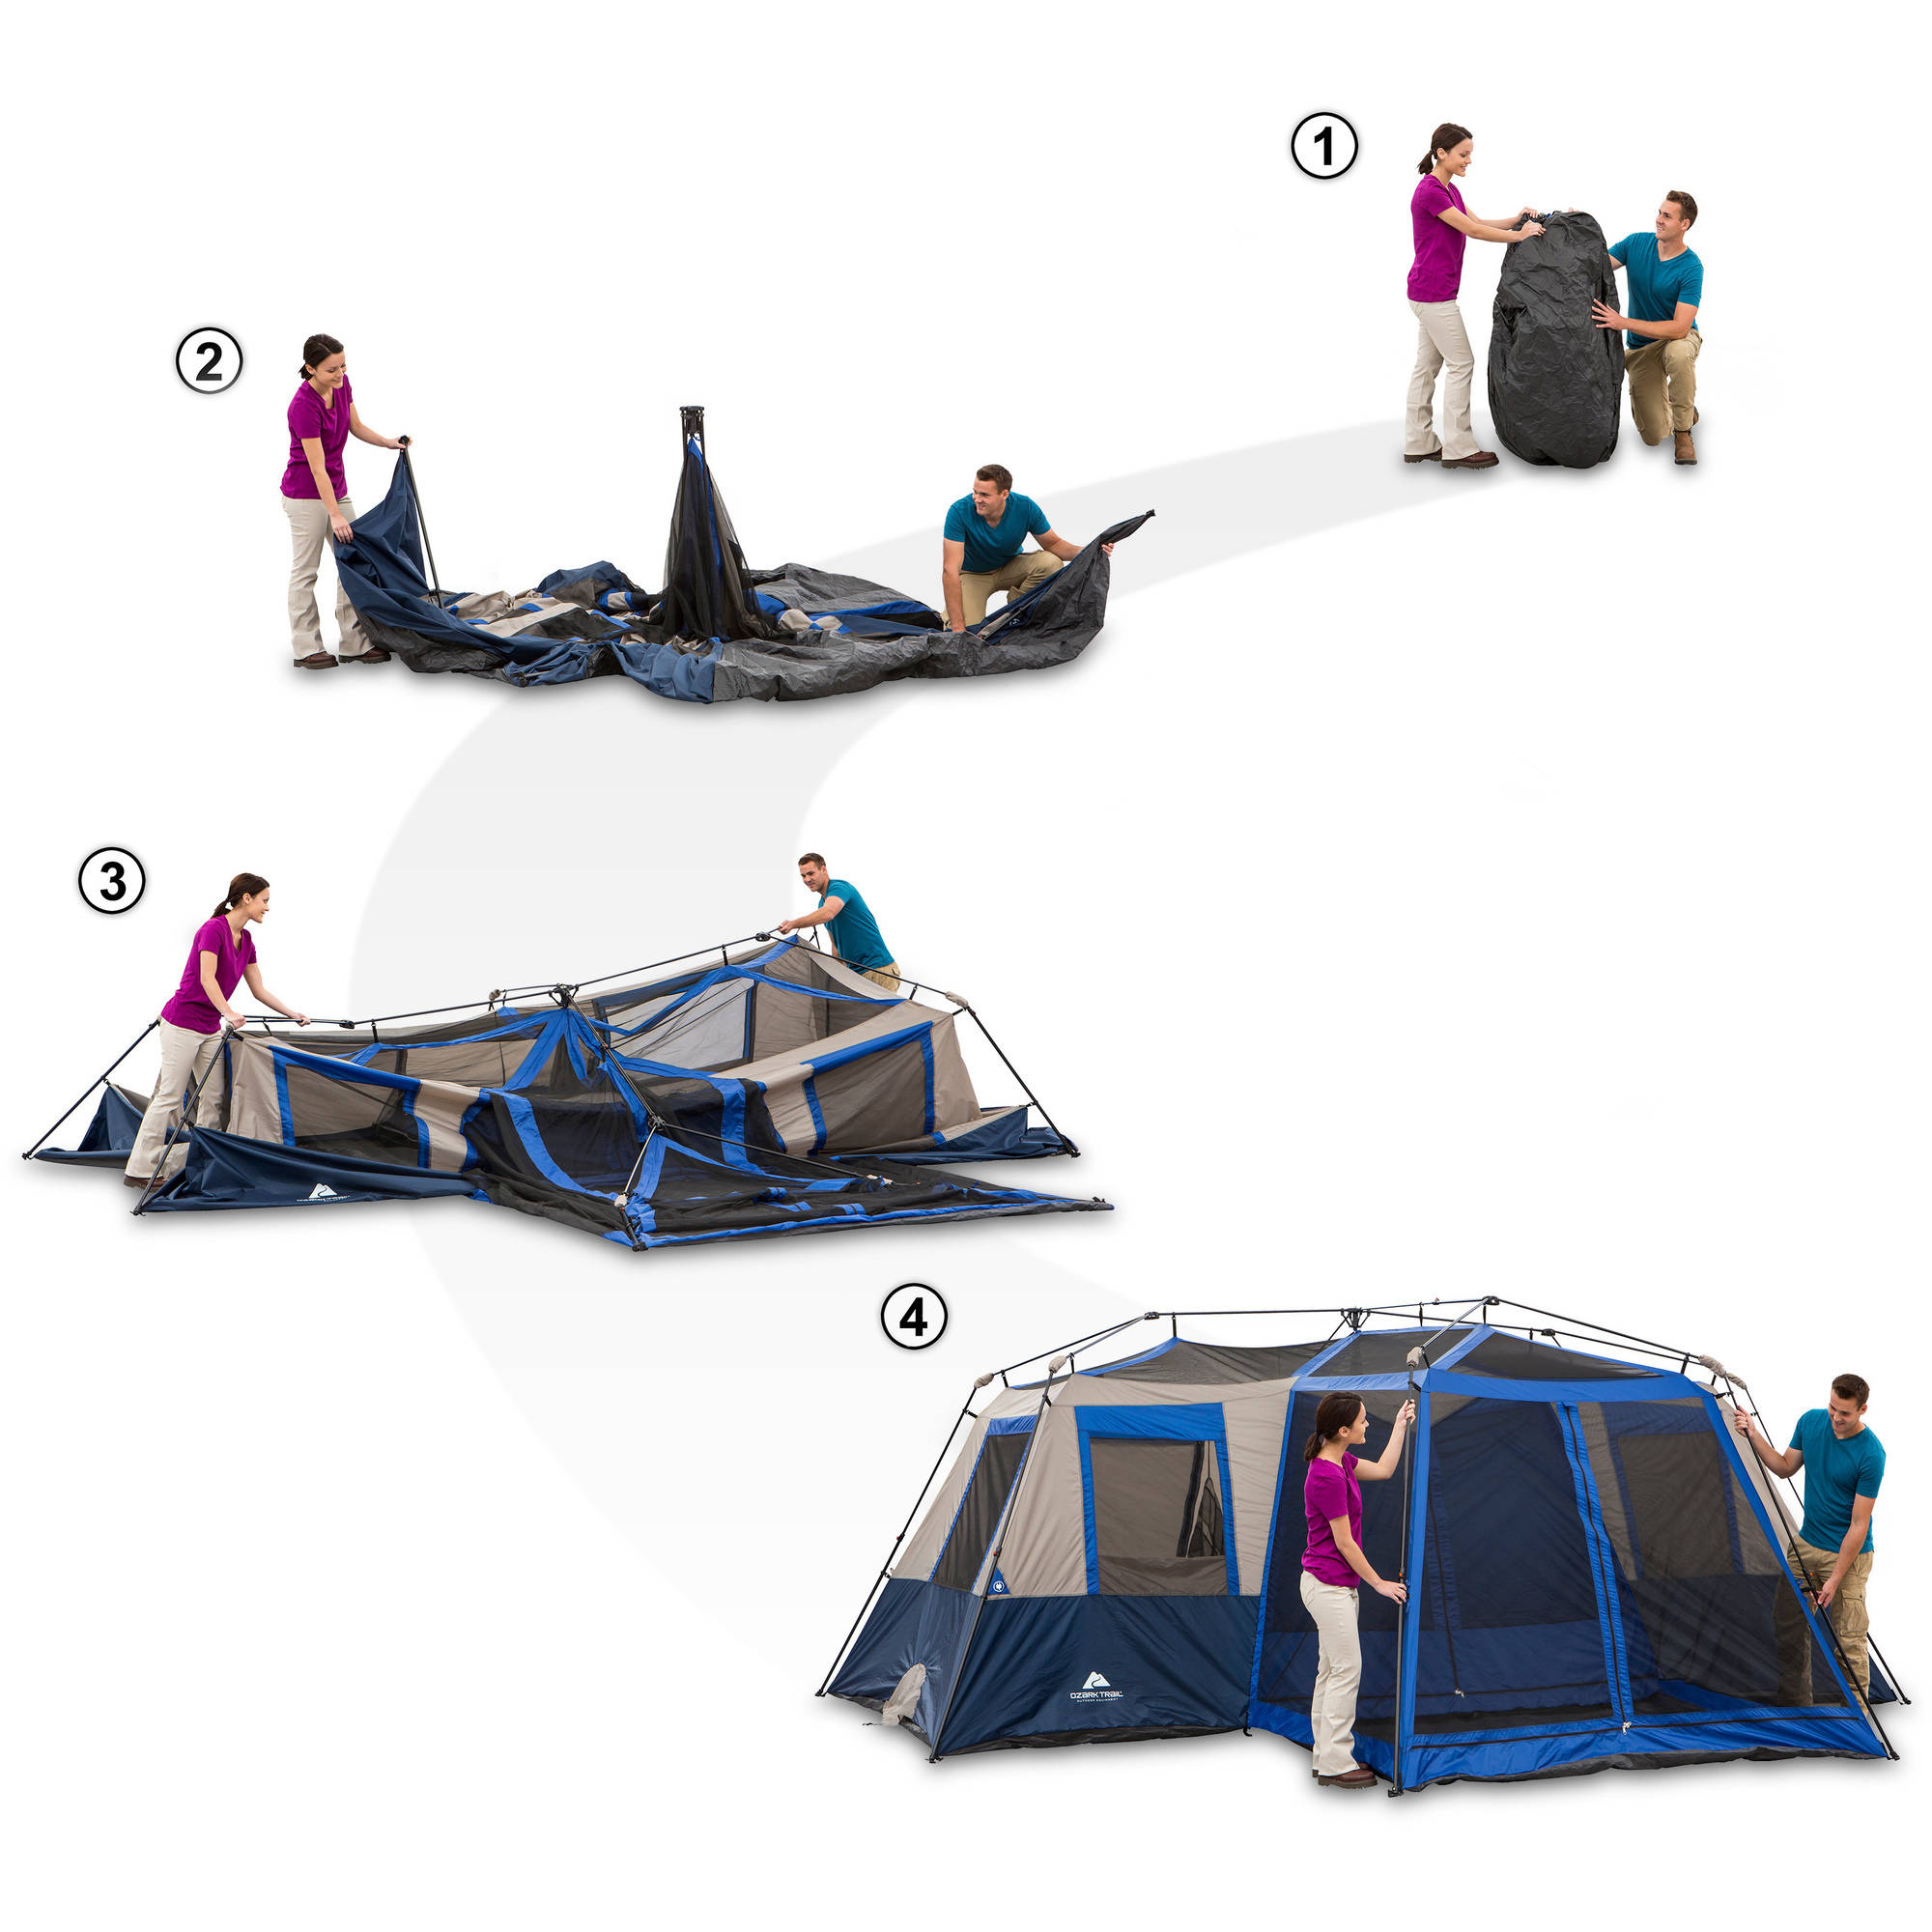 Ozark Trail 12 Person 2 Room Instant Cabin Tent With Screen Room    Walmart.com